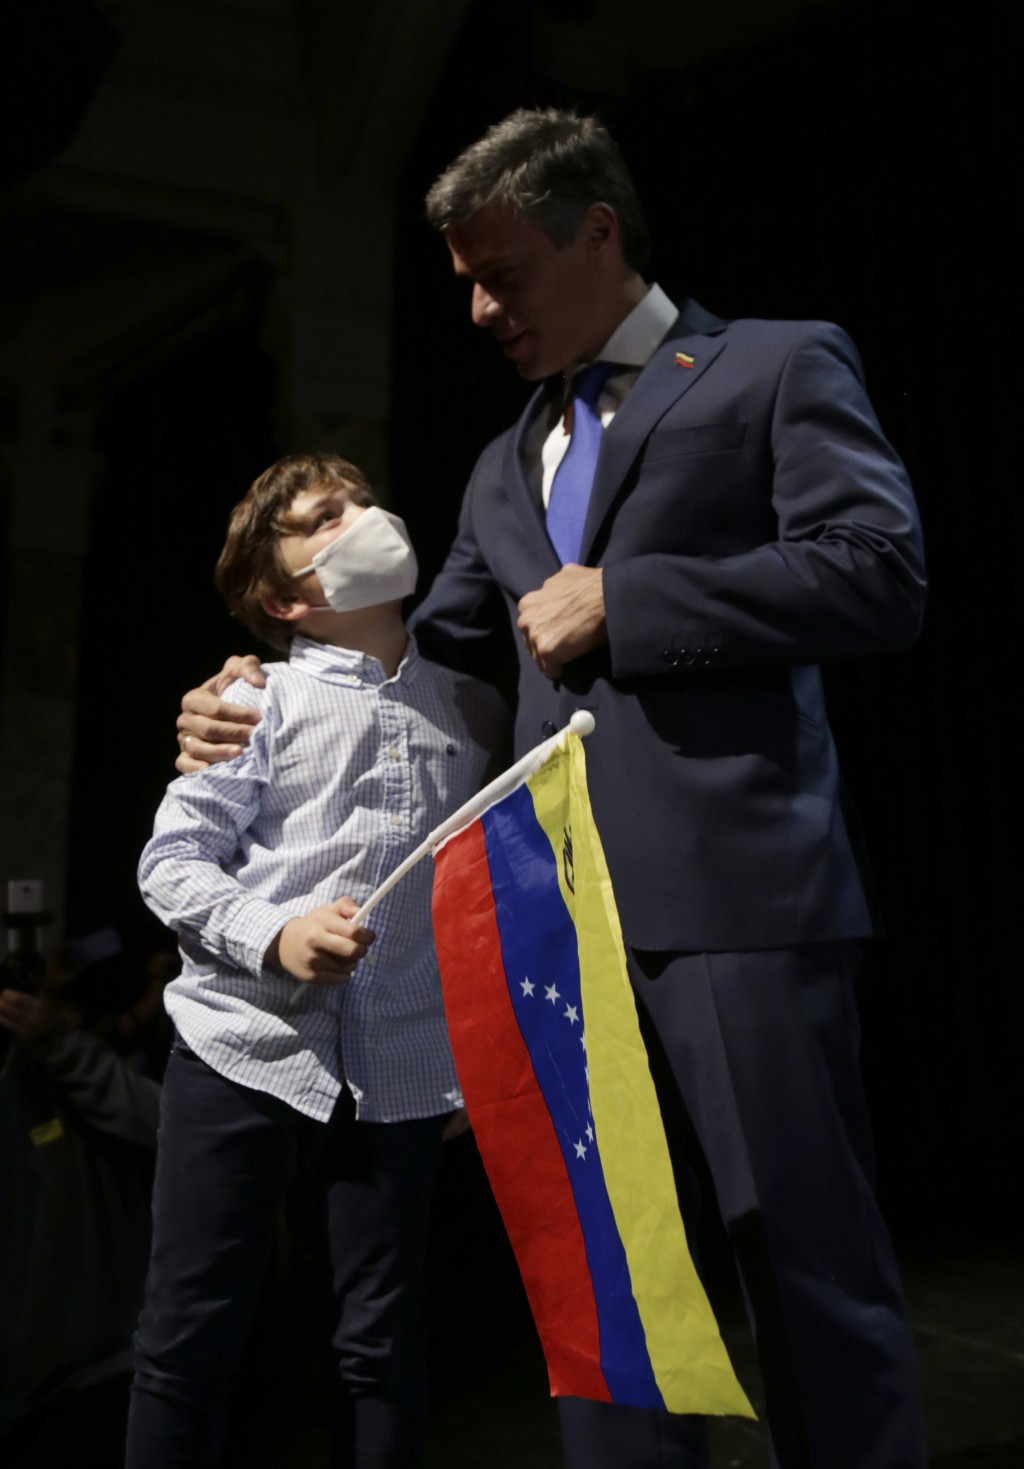 Venezuelan opposition leader Leopoldo Lopez arrives with his soon Leopoldo during press conference in Madrid on Tuesday, Oct. 27, 2020. Prominent oppo...